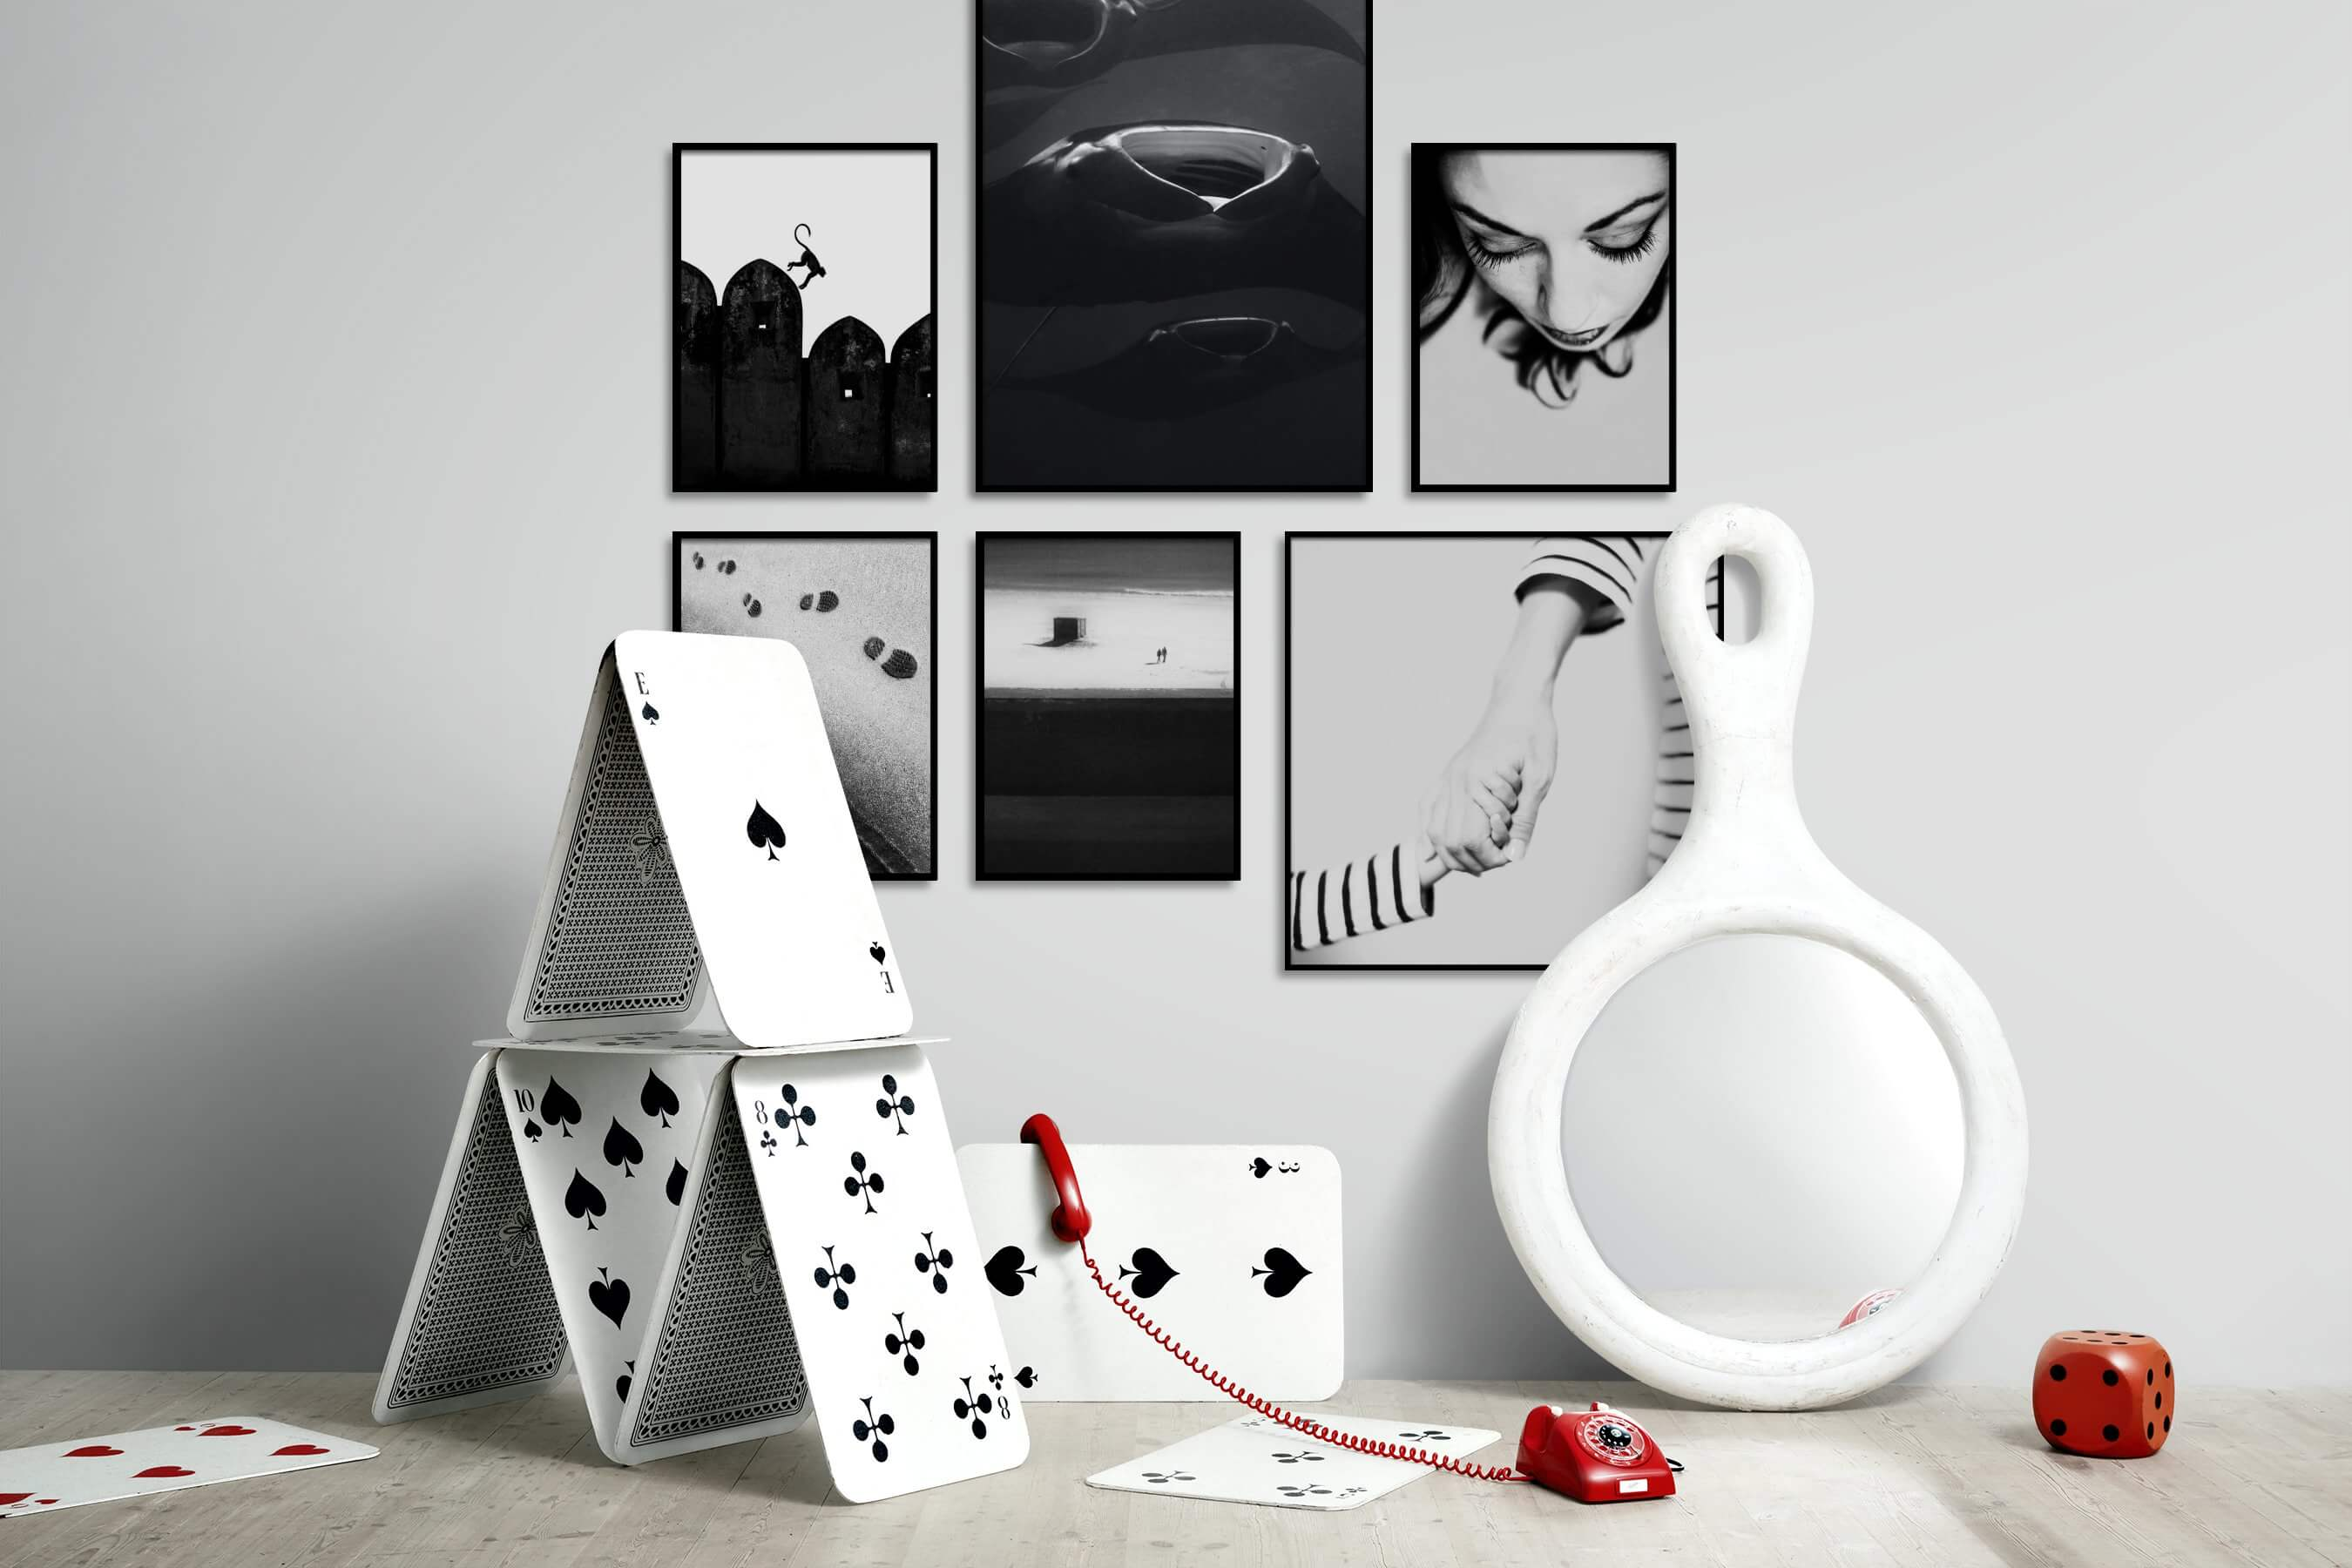 Gallery wall idea with six framed pictures arranged on a wall depicting Black & White, Animals, For the Moderate, Beach & Water, and Fashion & Beauty